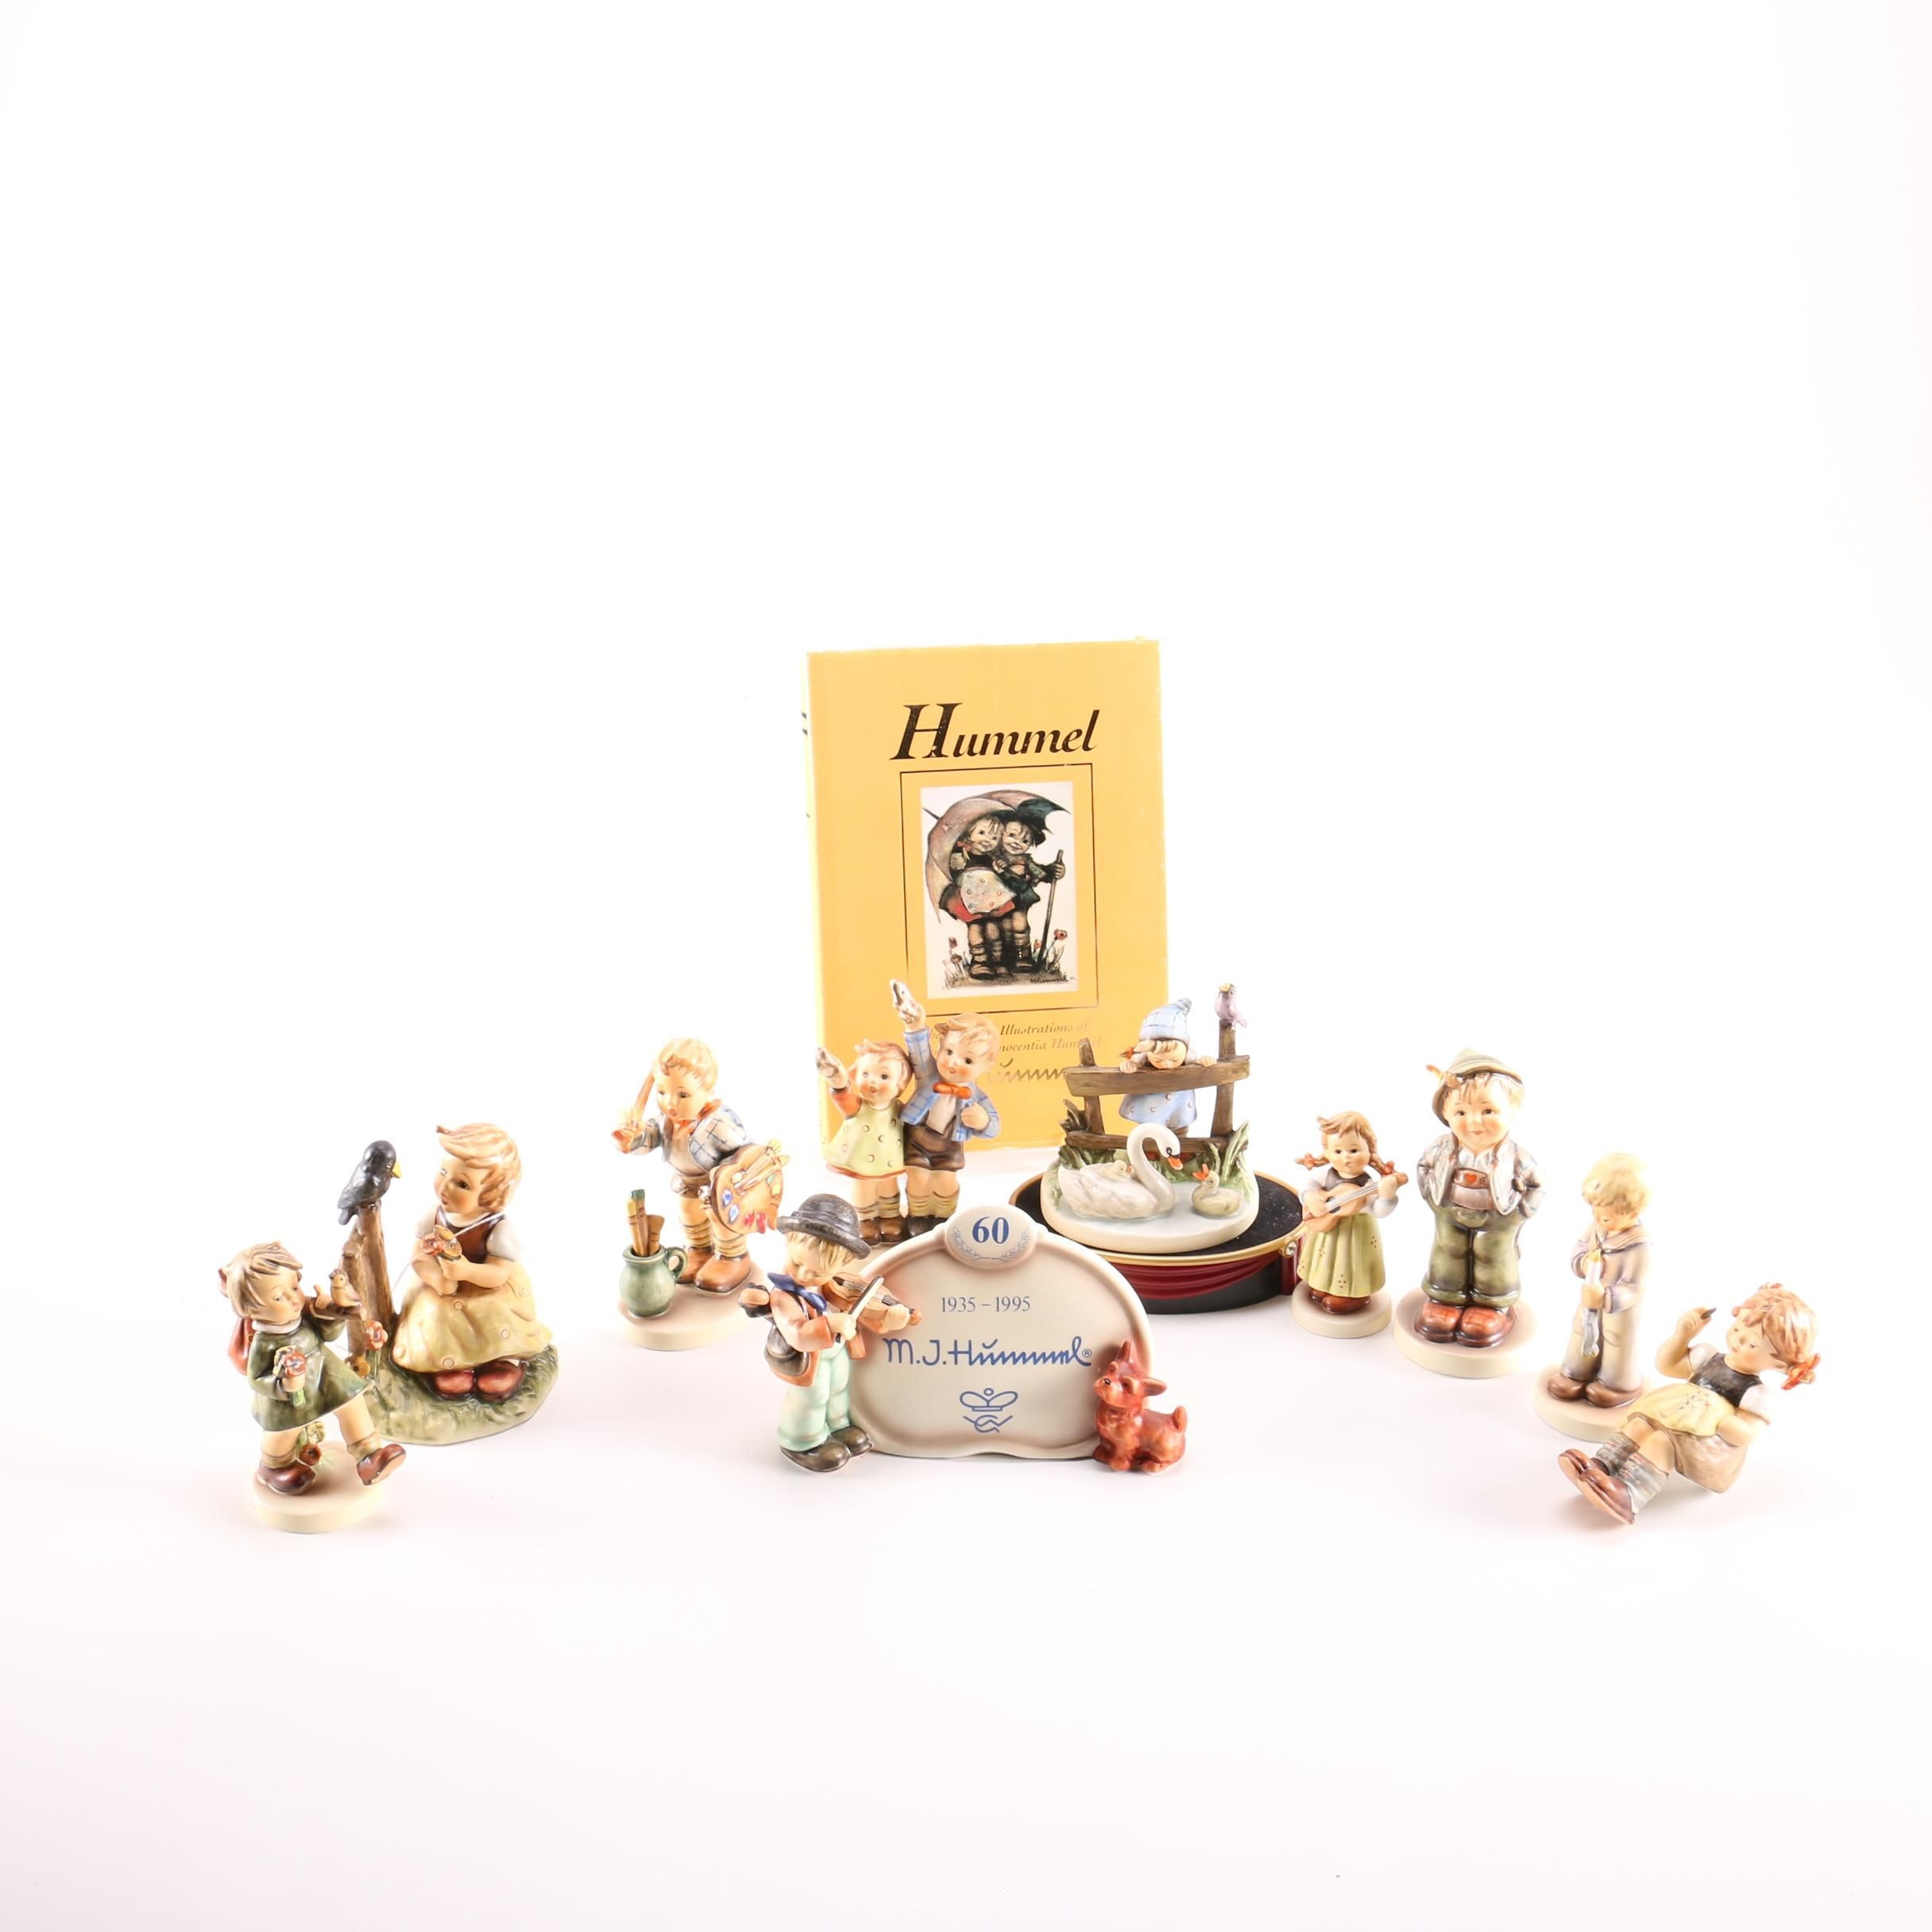 Collection of Hummel Figurines and Book